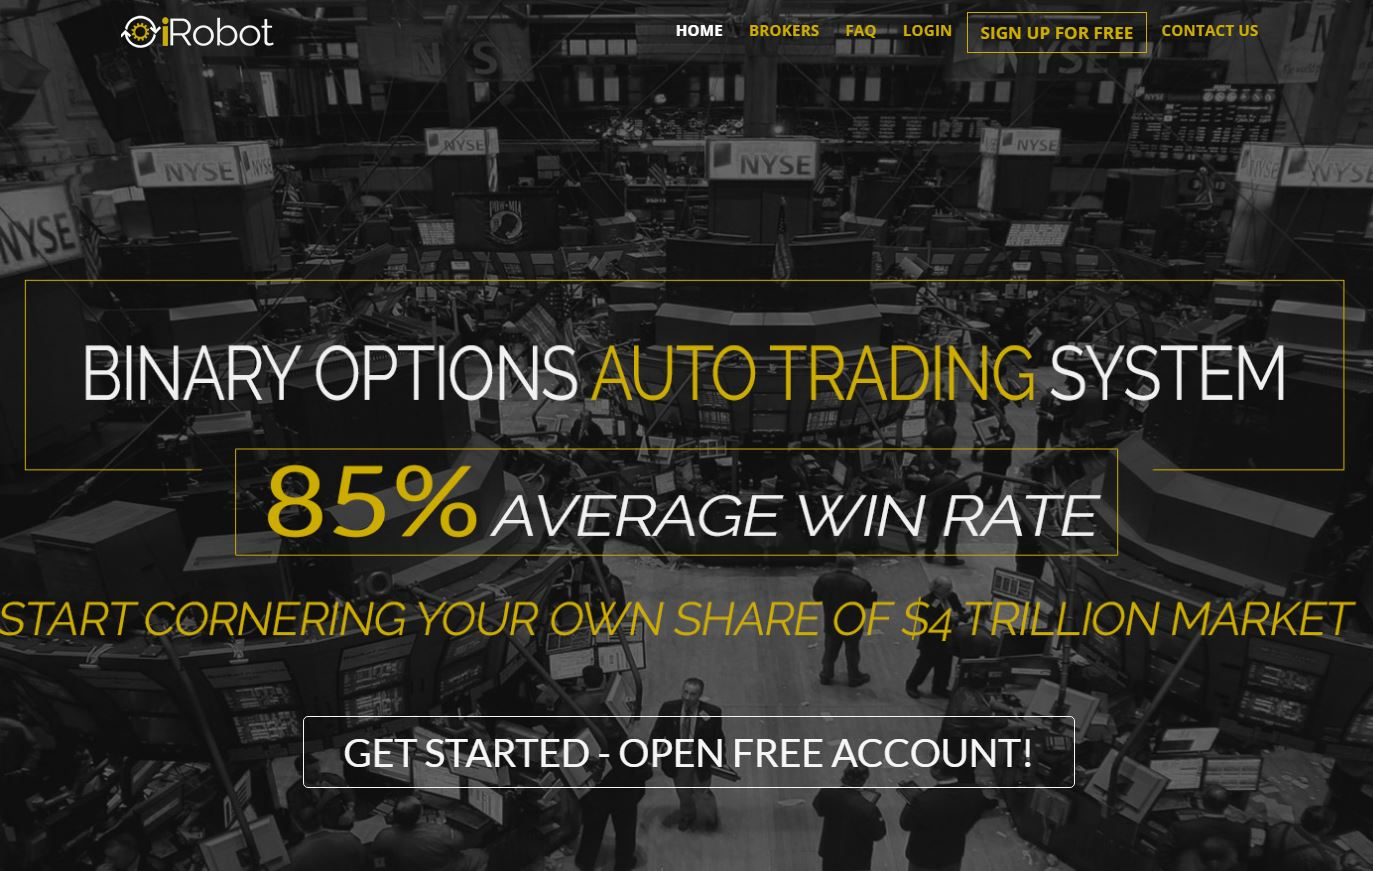 Real binary options review